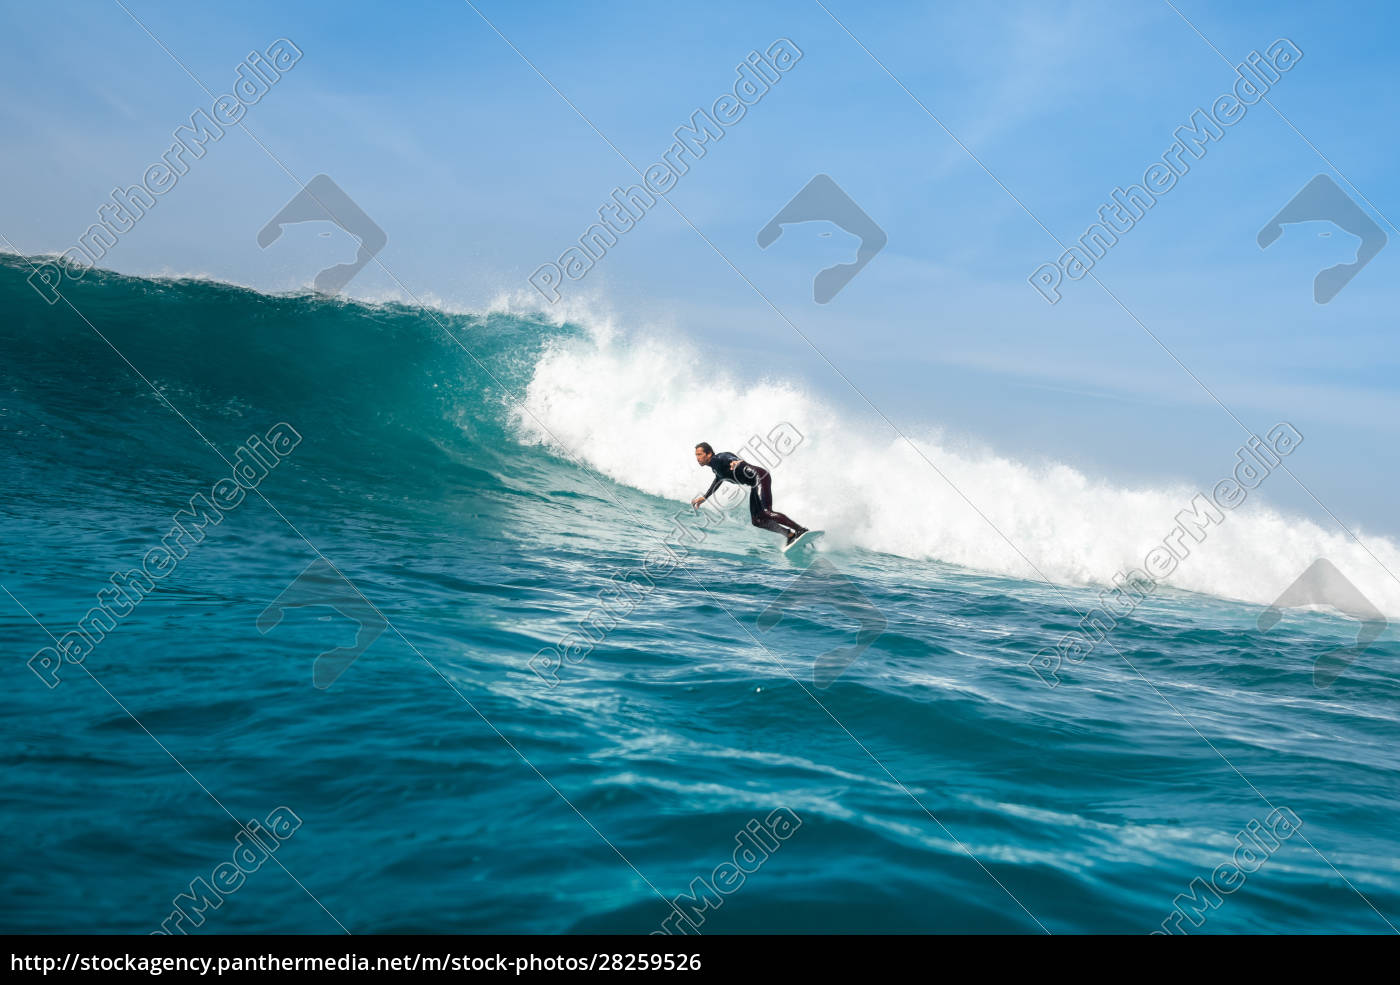 surfer, riding, waves, on, the, island - 28259526